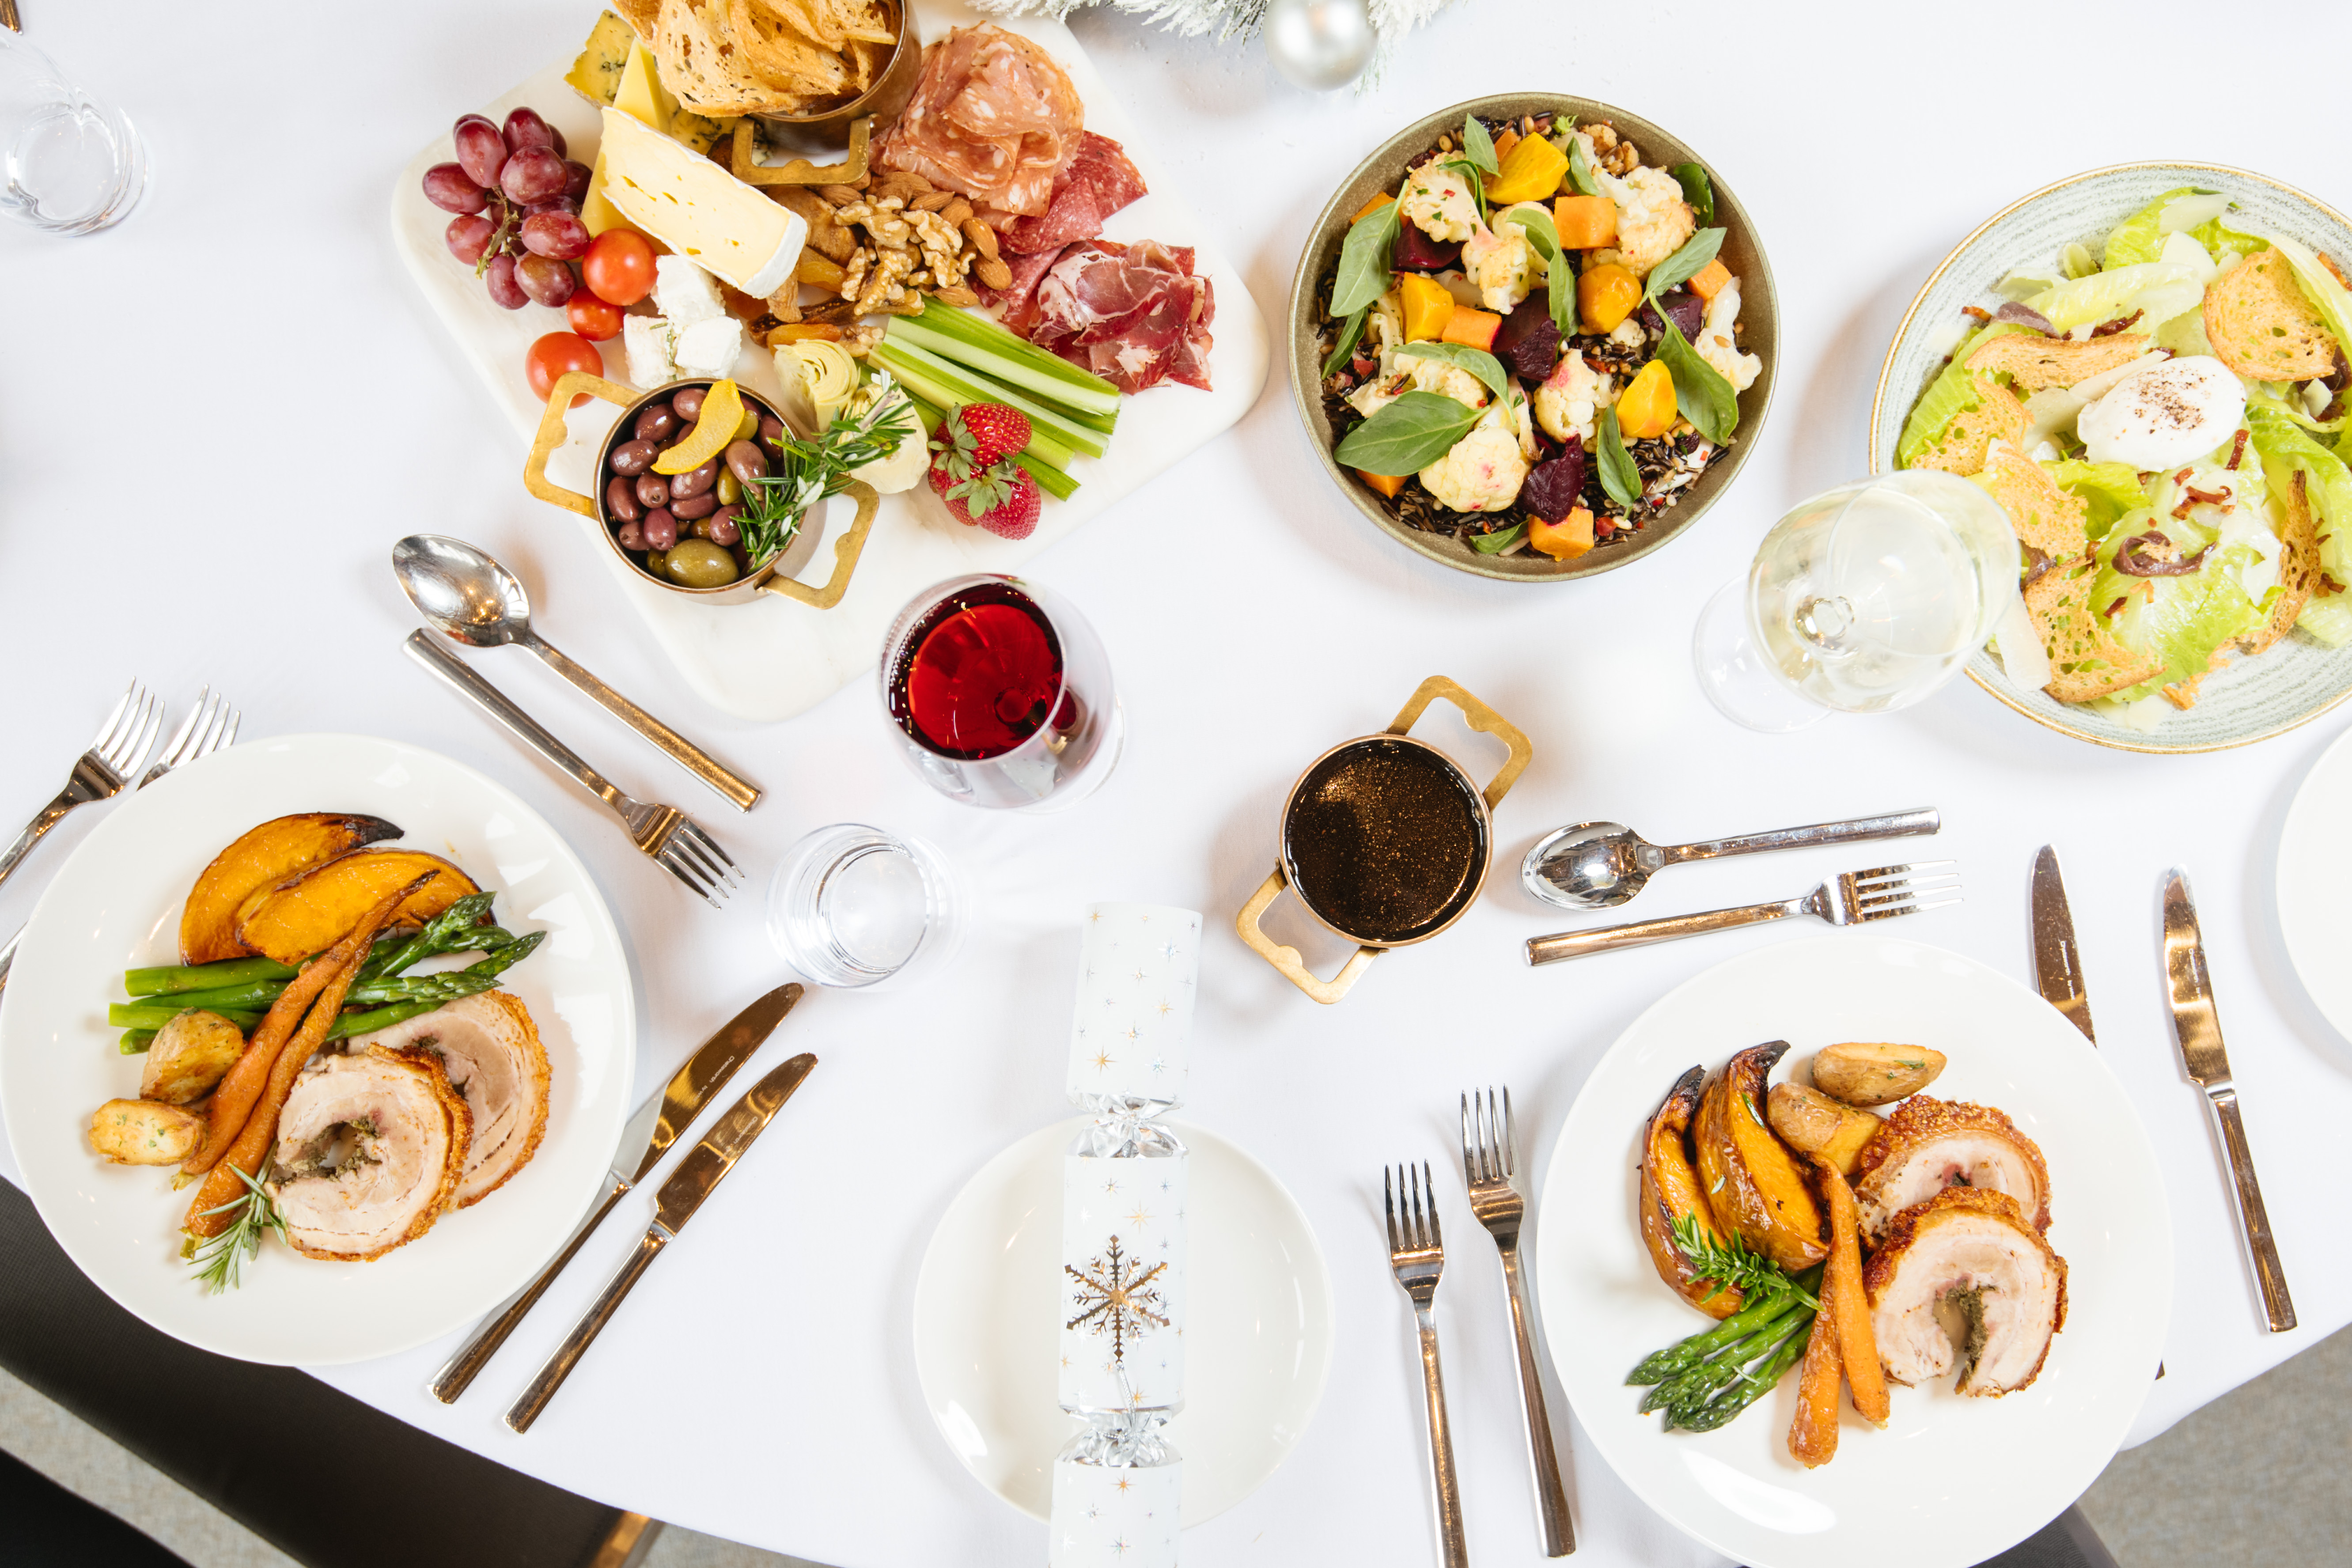 Birds eye view of plates of Christmas food